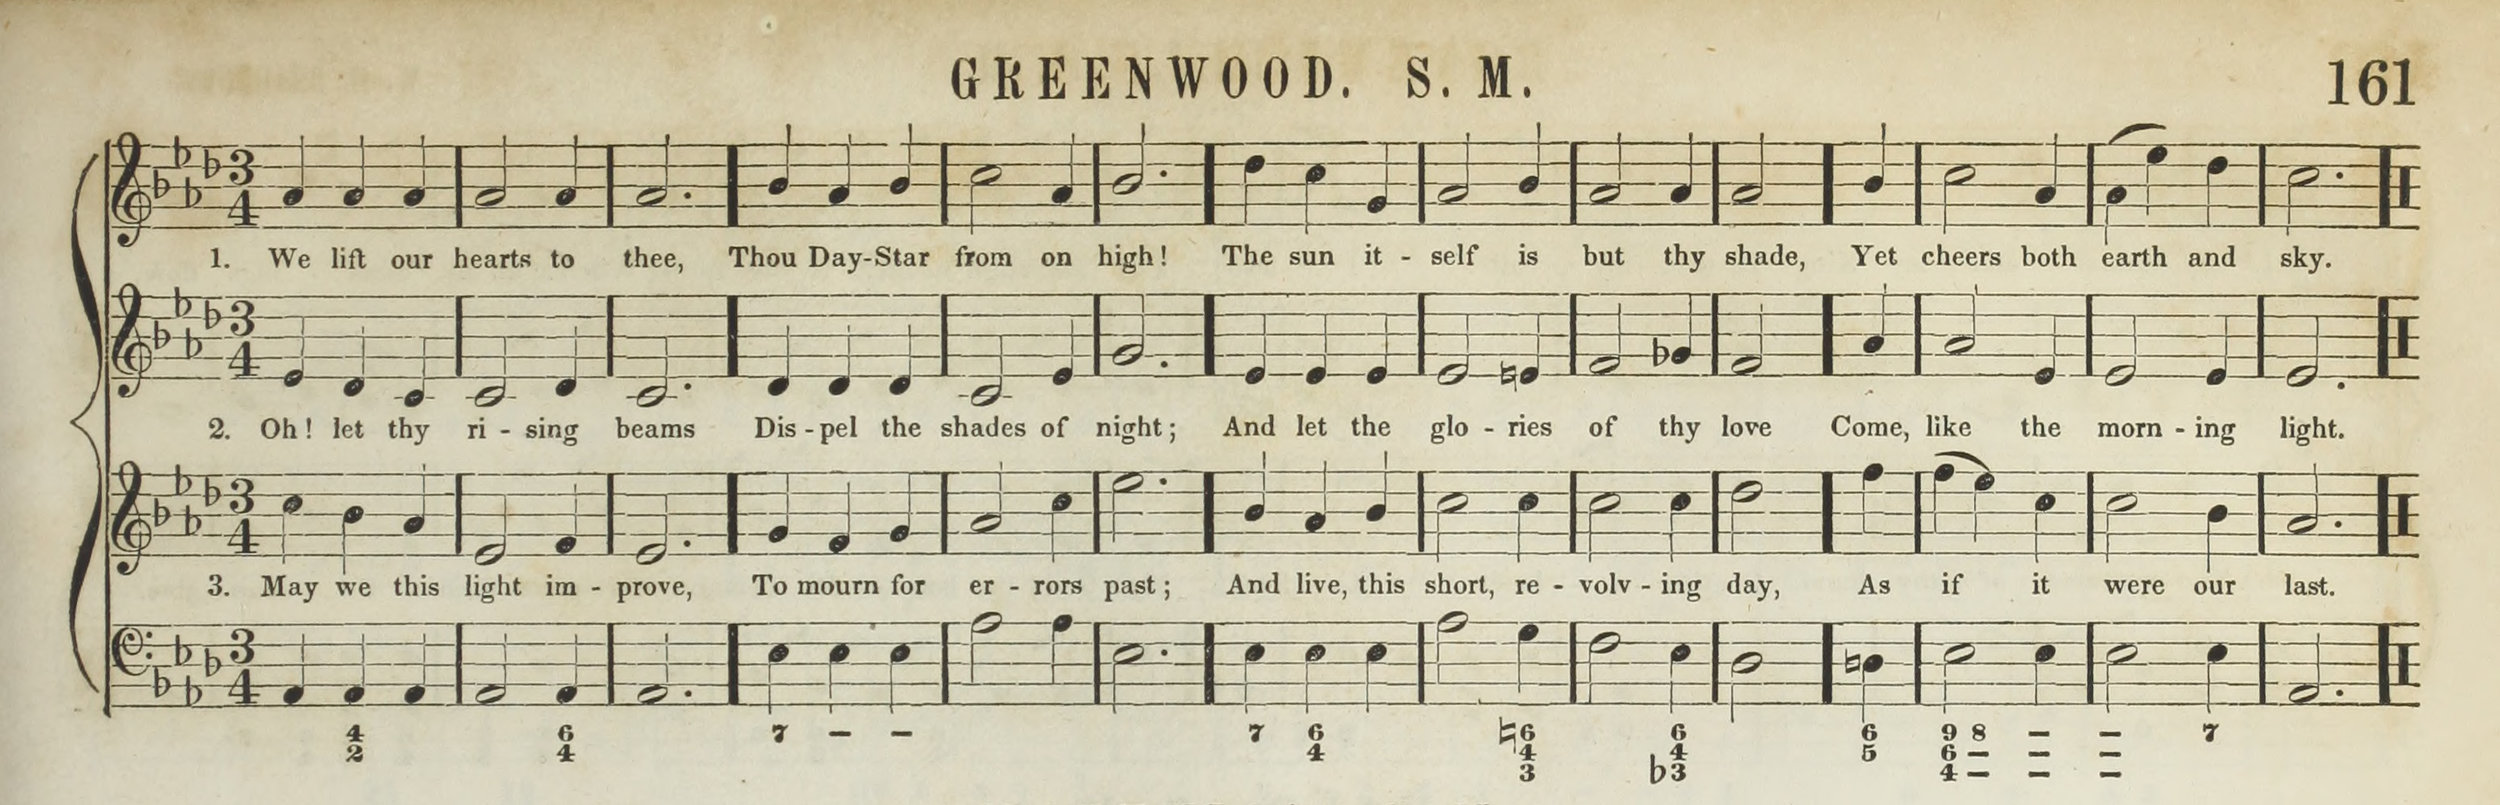 Fig. 6.  George F. Root & Joseph E. Sweetser,  A Collection of Church Music  (NY: John Wiley, 1849). Melody in the tenor voice.